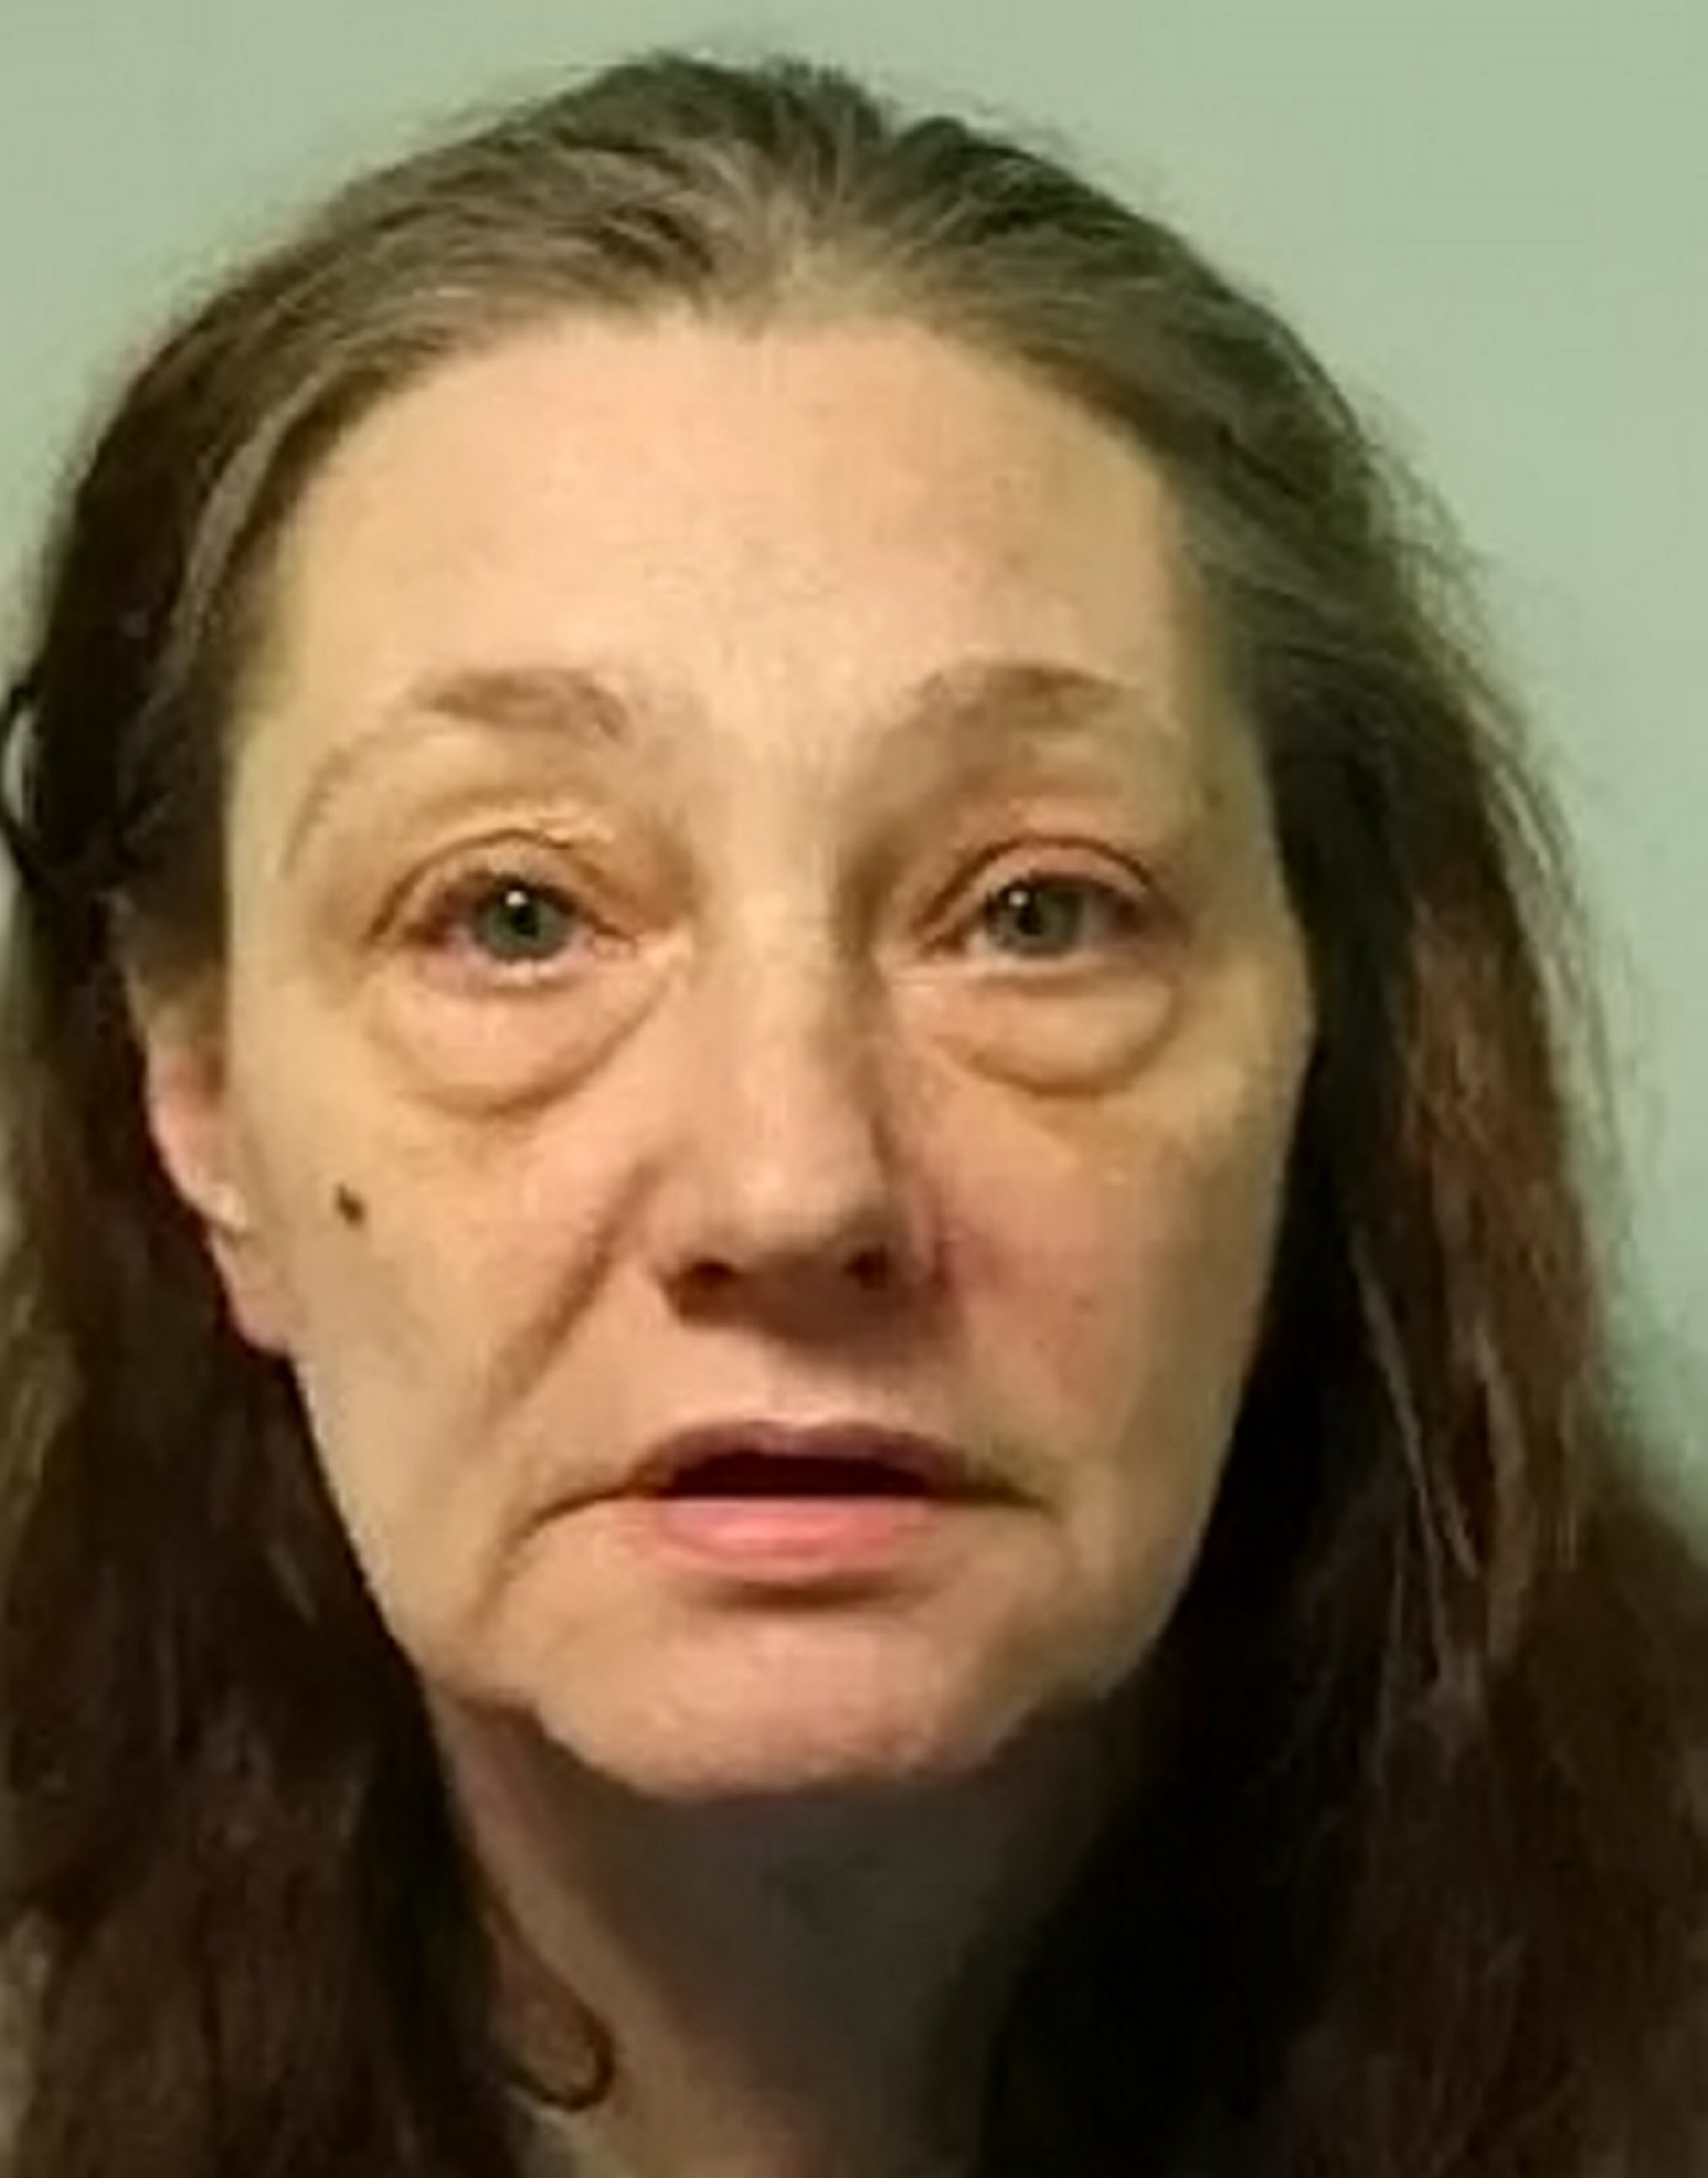 Mugshot of Joanne Hatwell, 46. See national story NNpension.An evil mum and her son who knifed a frail 75-year-old man for his pension have been locked up for 16 years.Jobless thug Joanne Hatwell, 46, followed the victim home after he collected his ?160 pension before she and her son Ryan Hatwell, 27, robbed him.The victim was forced to move into a care home after the sickening attack, which caused his health to deteriorate.Joanne Hatwell was jailed for eight years after she was found guilty of robbery at Snaresbrook Crown Court.